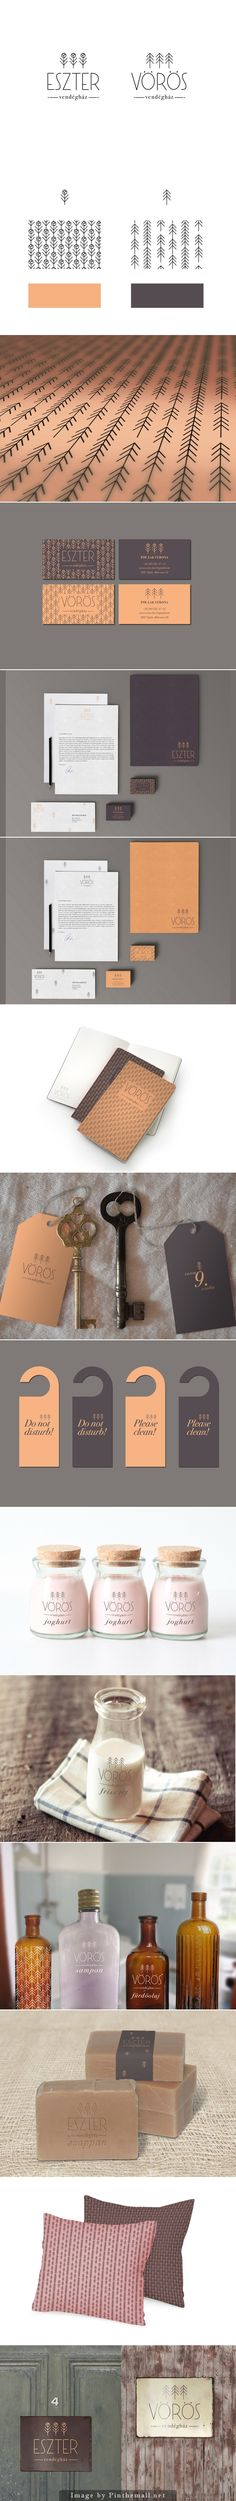 Eszter and Vörös Guesthouse who wouldn't want to stay here | #stationary #corporate #design #corporatedesign #identity #branding #marketing repinned by www.BlickeDeeler.de | Visit our website: www.blickedeeler.de/leistungen/corporate-design